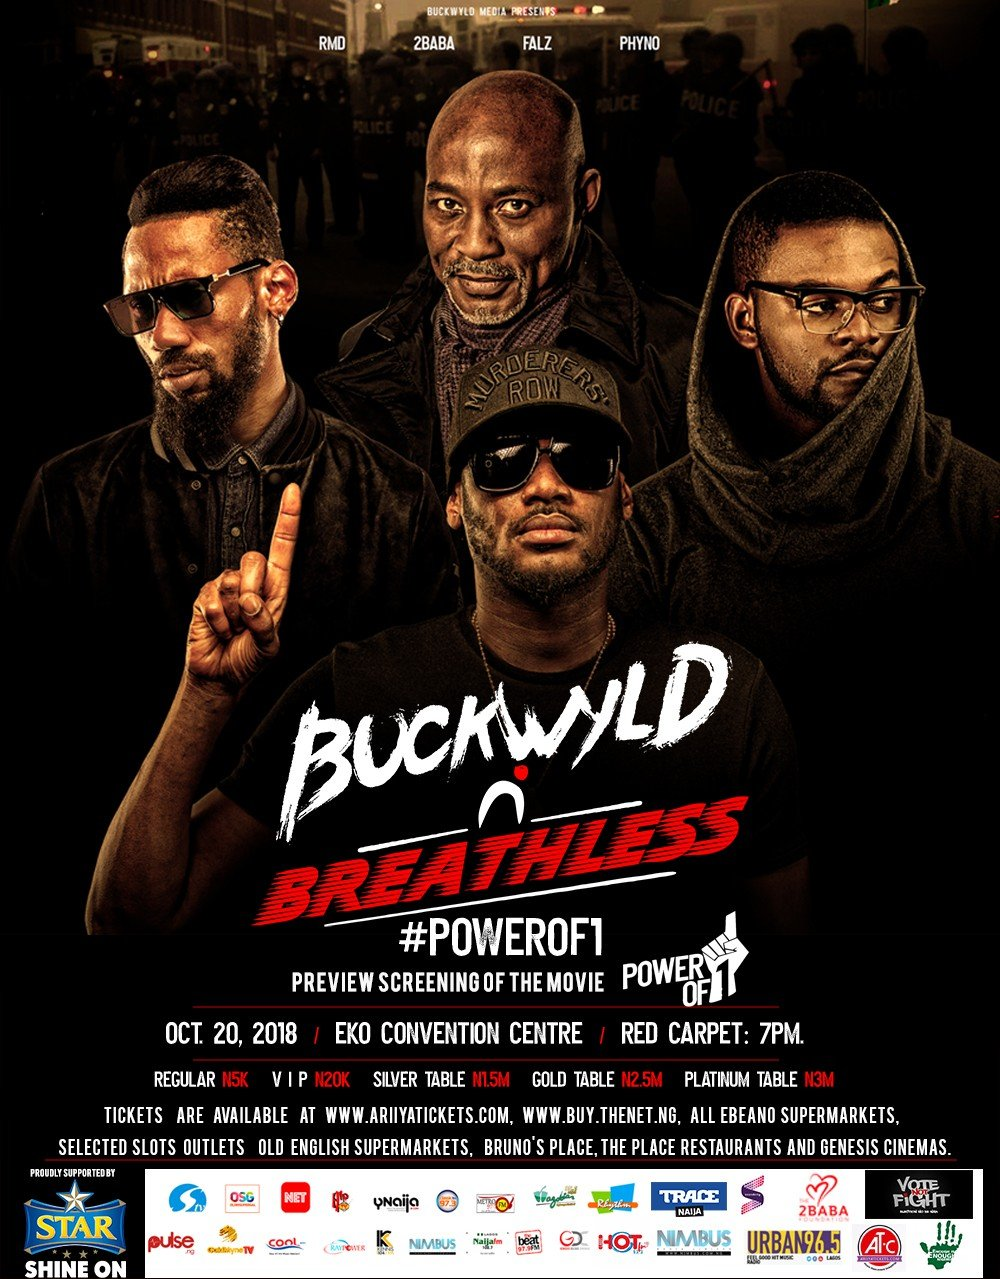 2face's Buckwyld 'n' Breathless concert to hold on the 20th of October